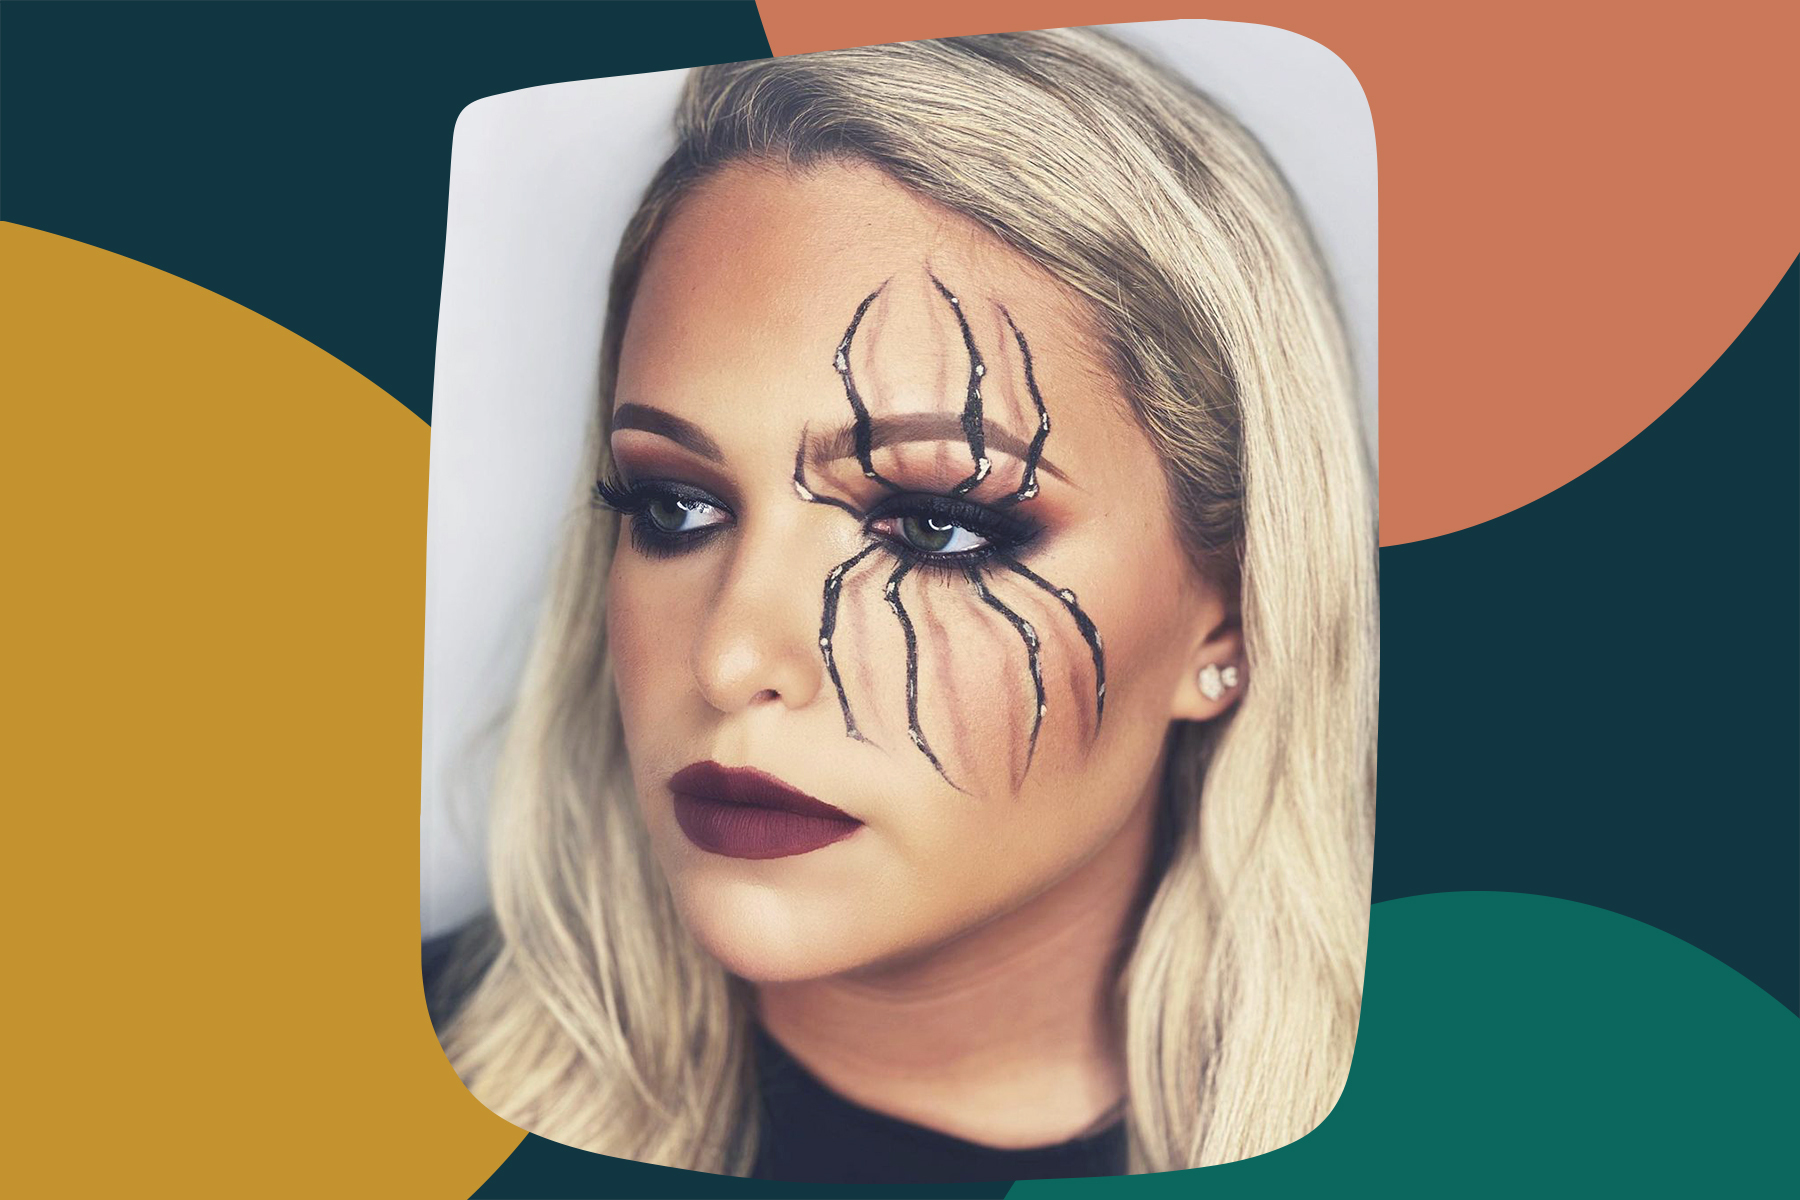 11 pretty Halloween eye makeup ideas to try | HelloGiggles